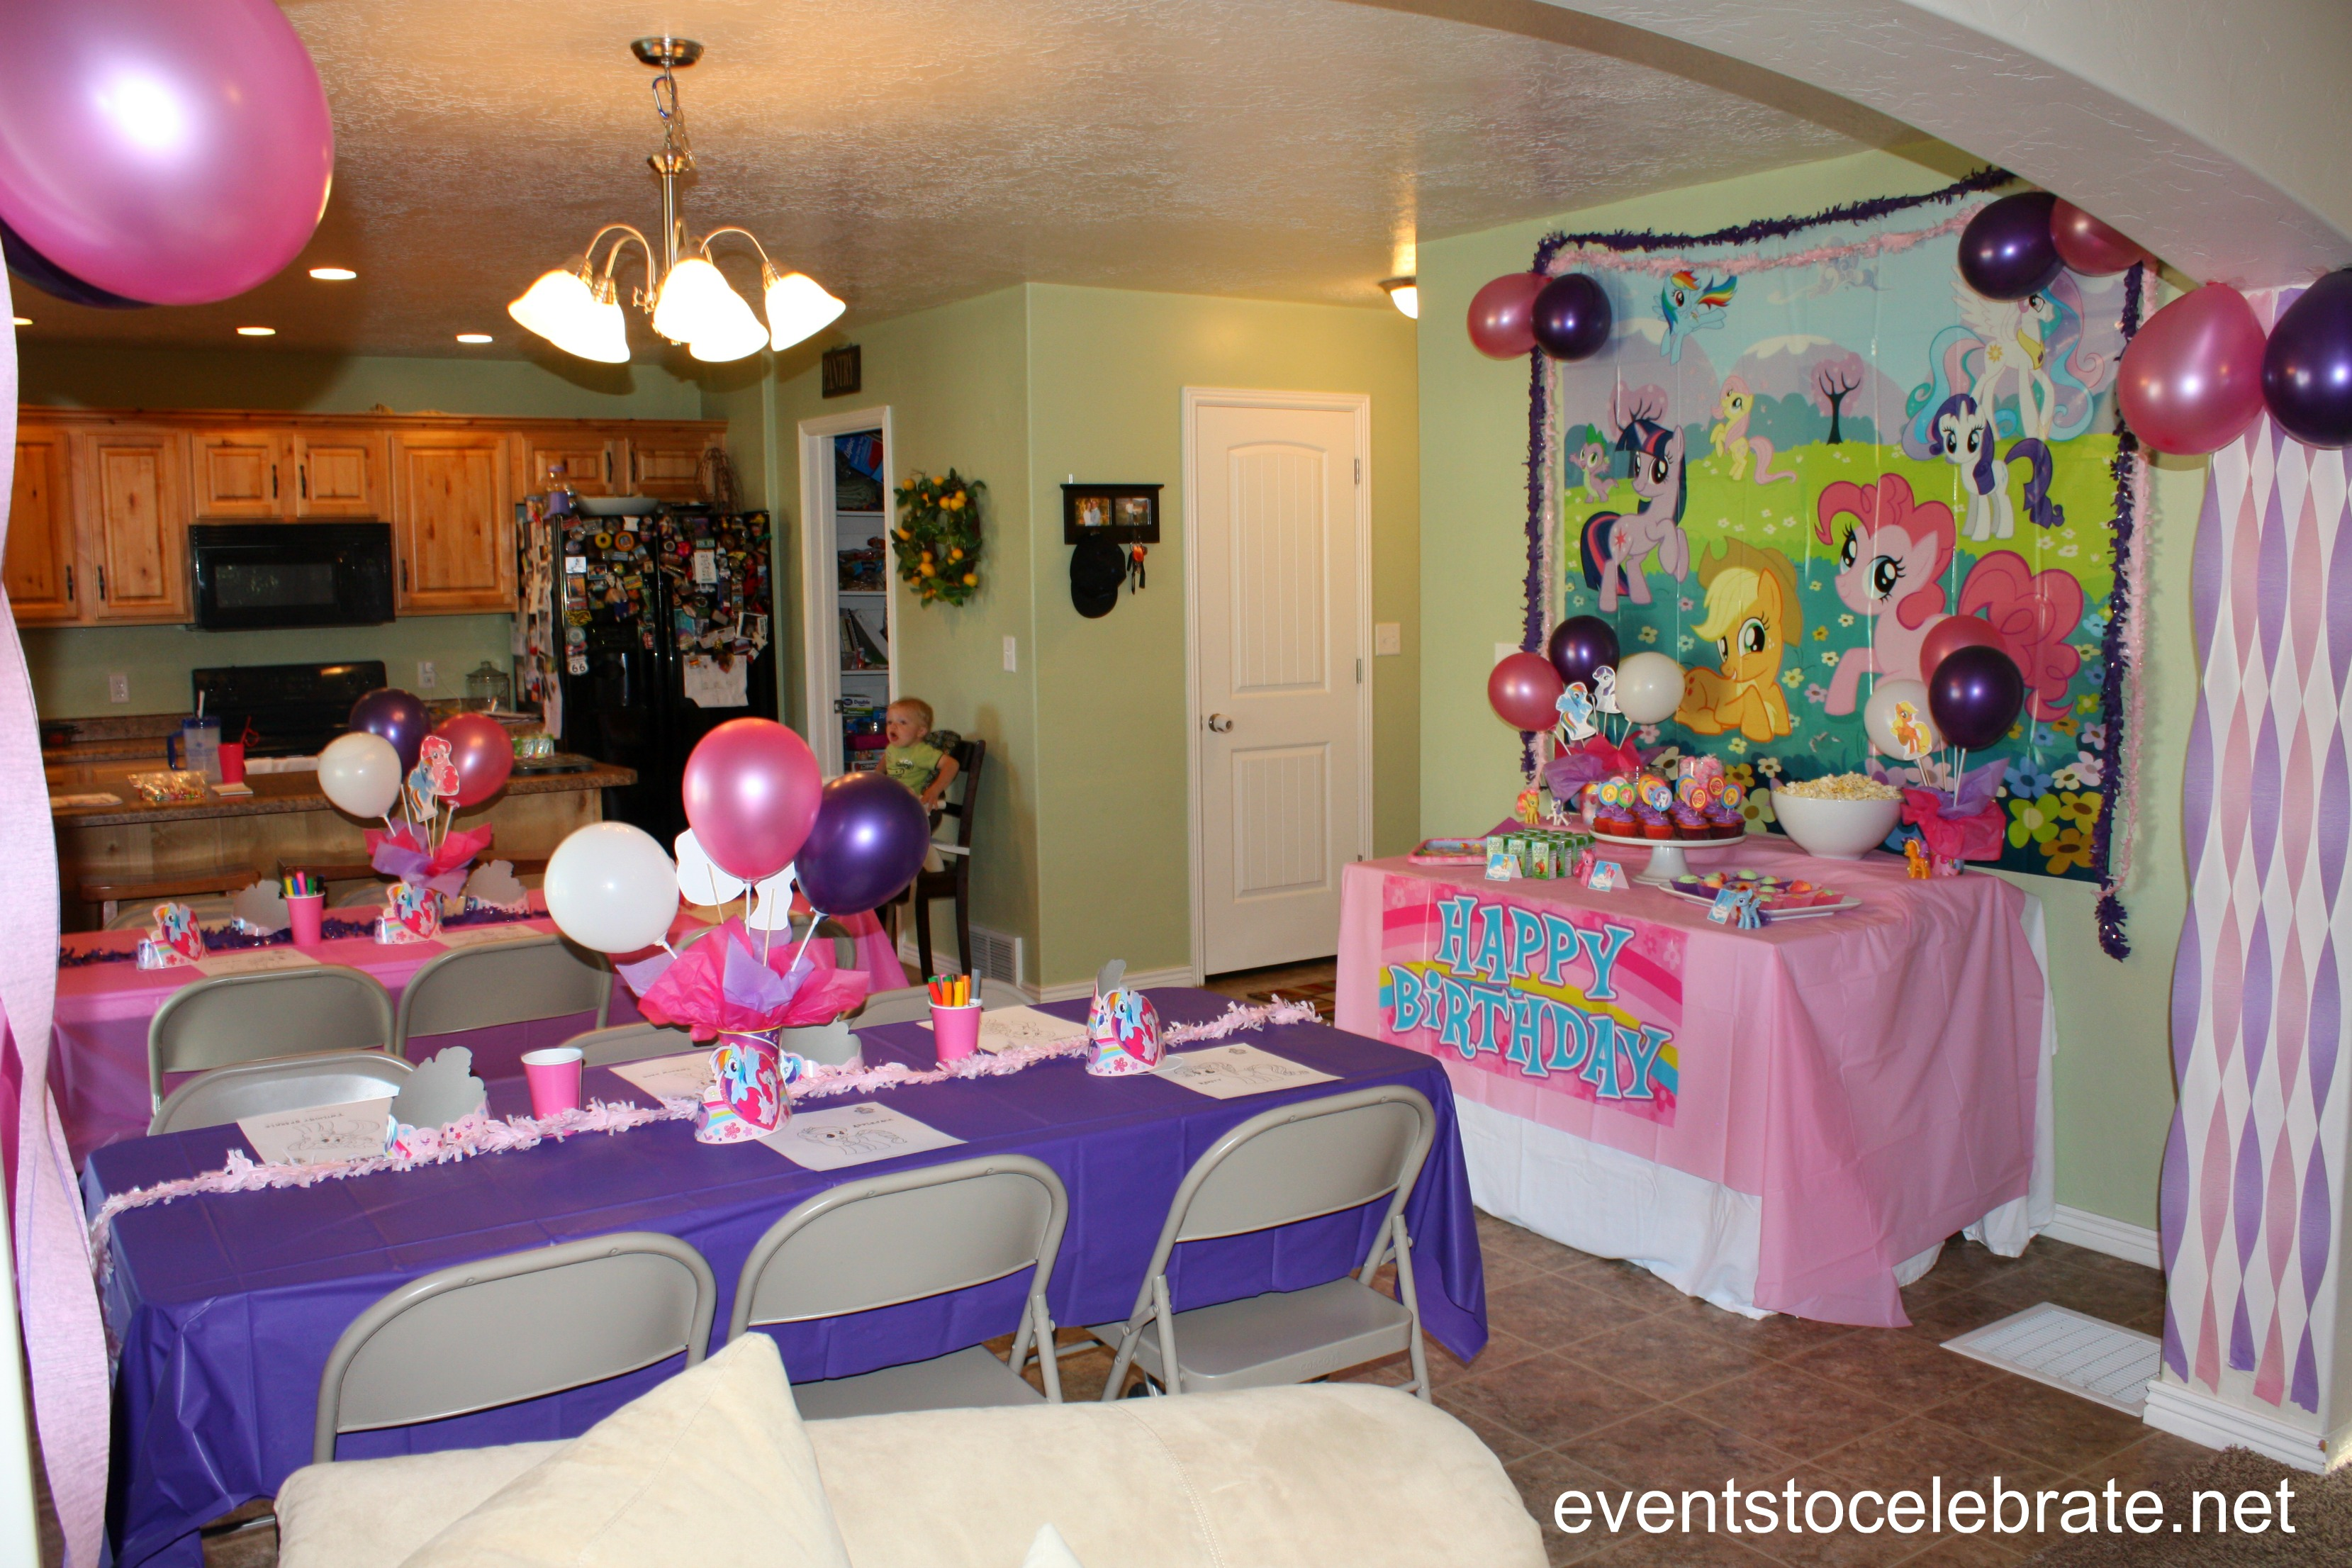 My Little Pony Decorations My Little Pony Party Decor Eventstocelebrate Net